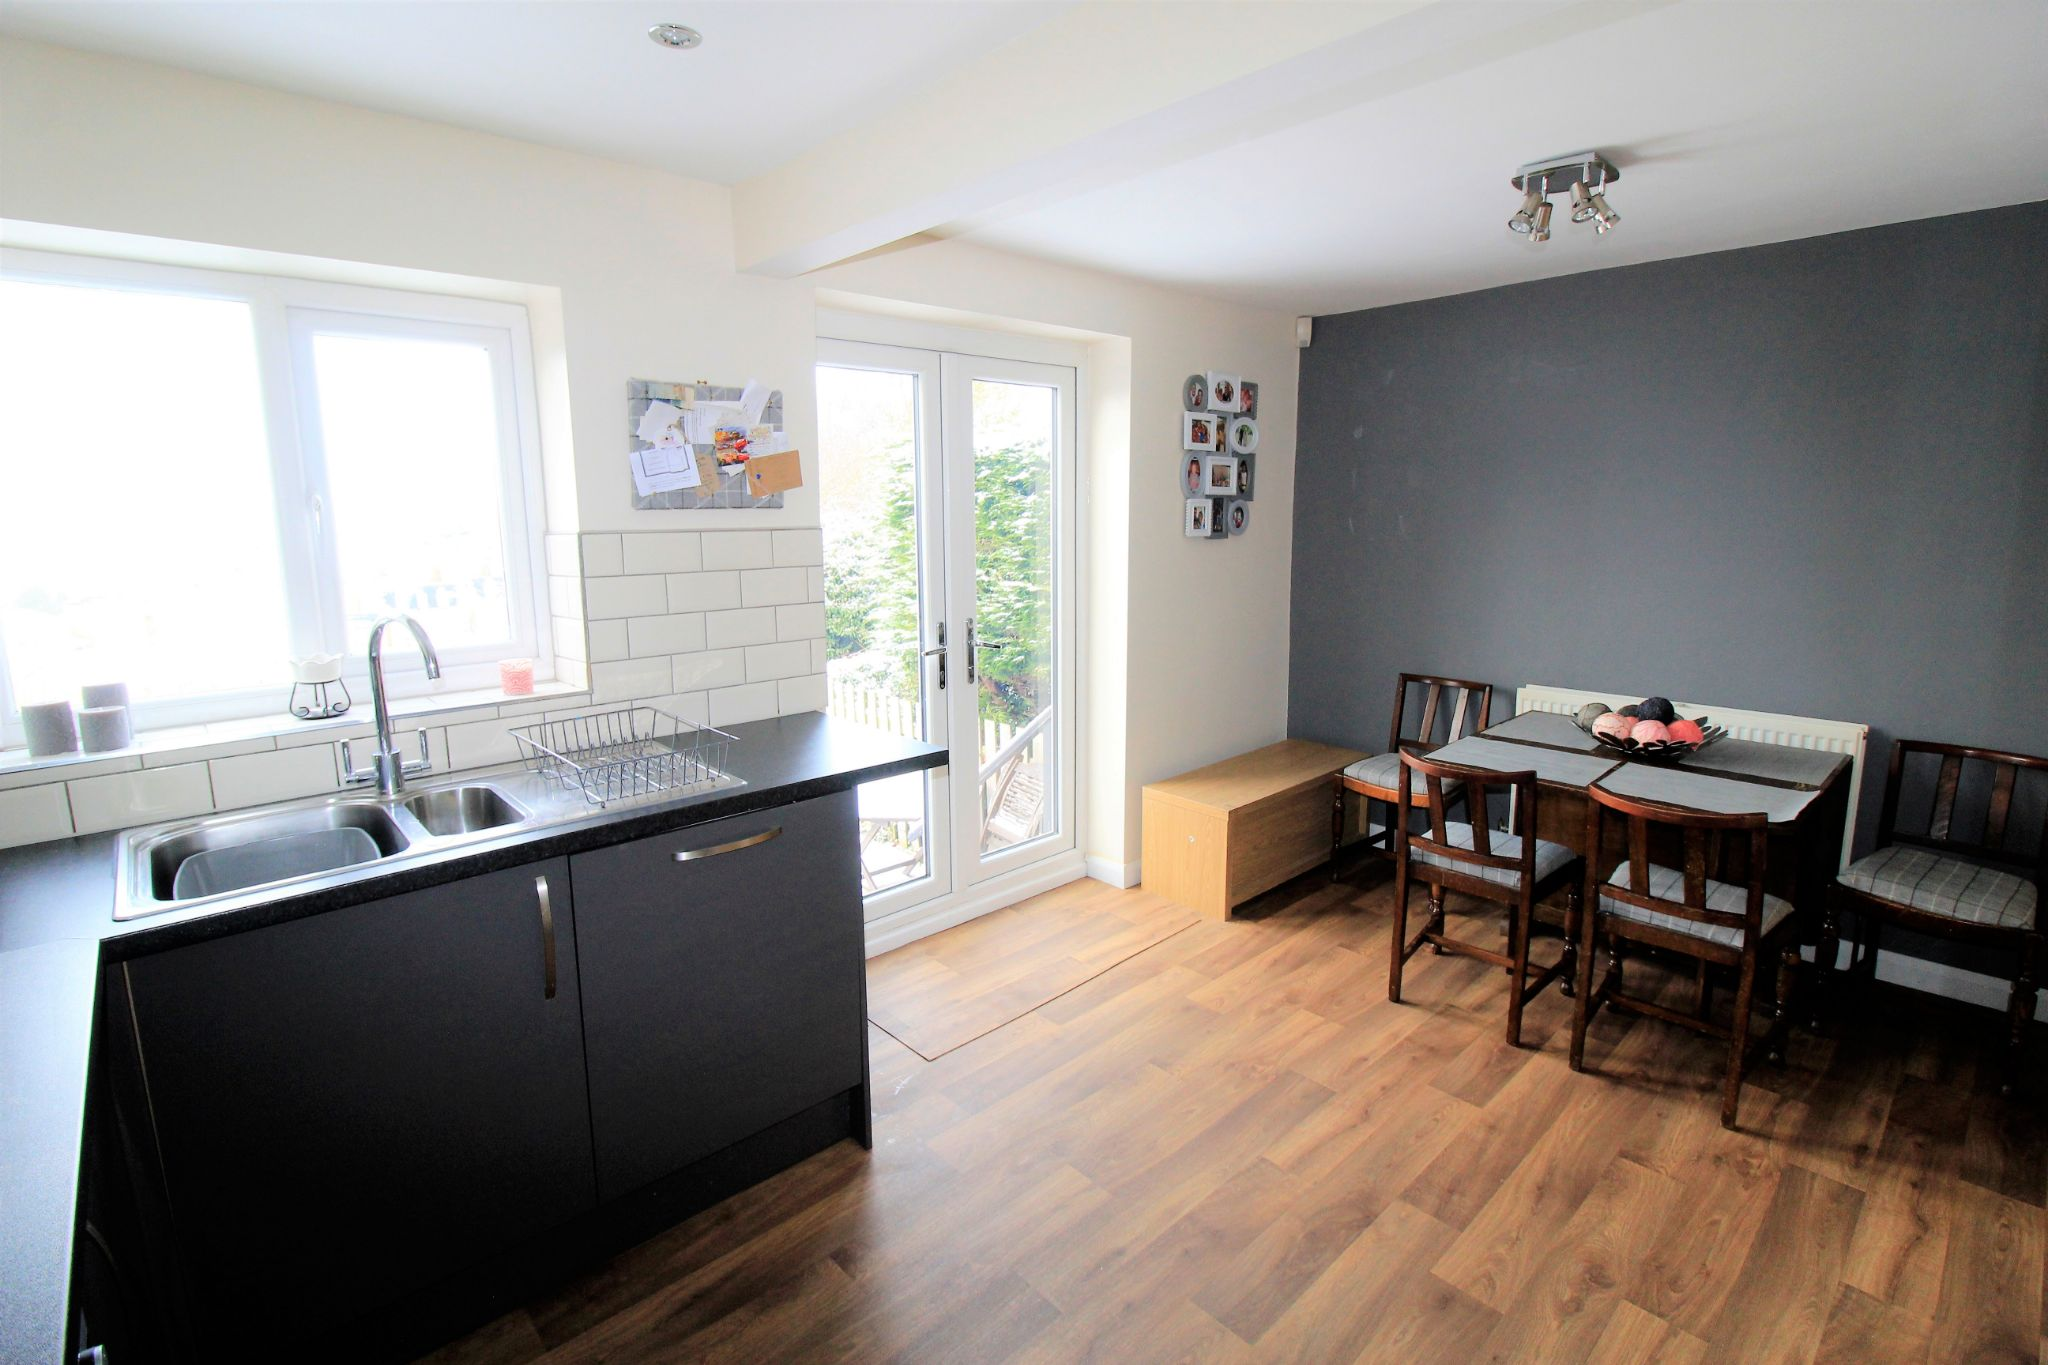 3 bedroom semi-detached house SSTC in Shipley - Kitchen and dining area